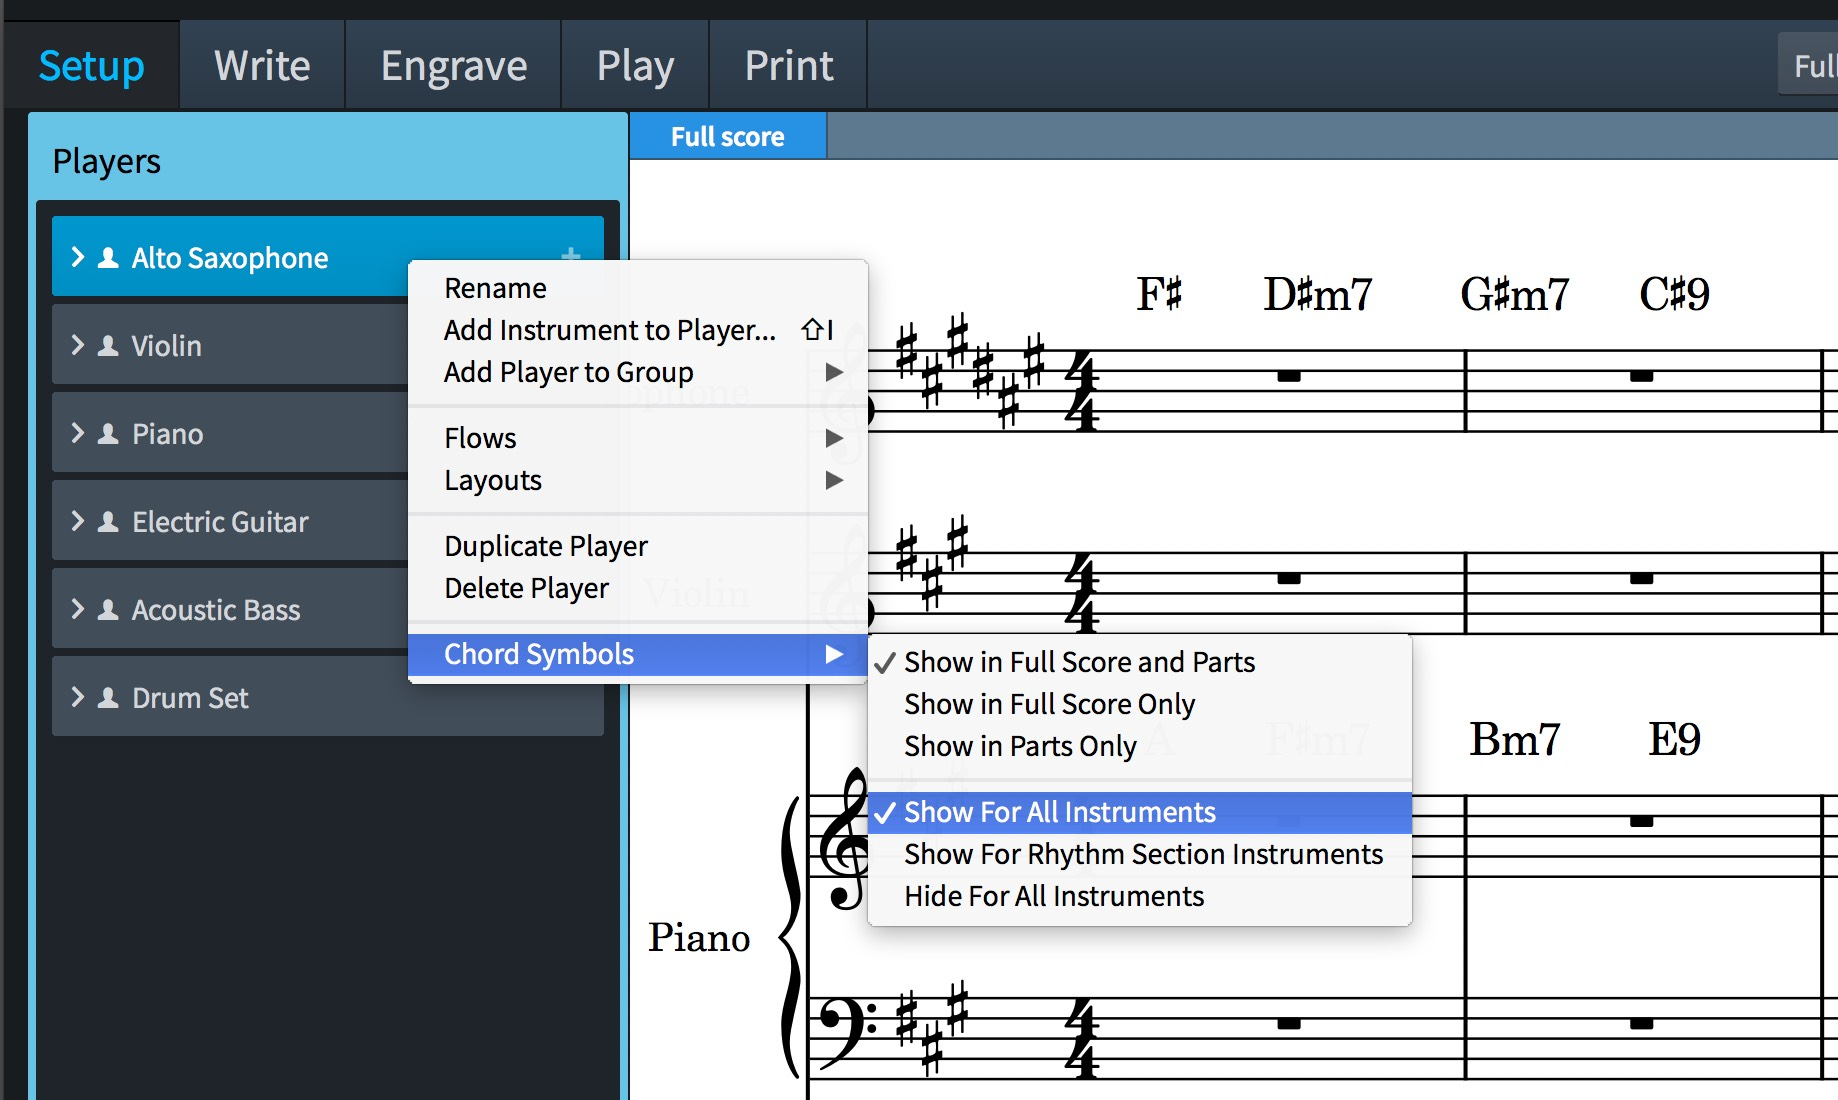 Dorico 11 is a major release chord symbols repeat endings among show for all instruments means all the instruments for the selected player hexwebz Image collections